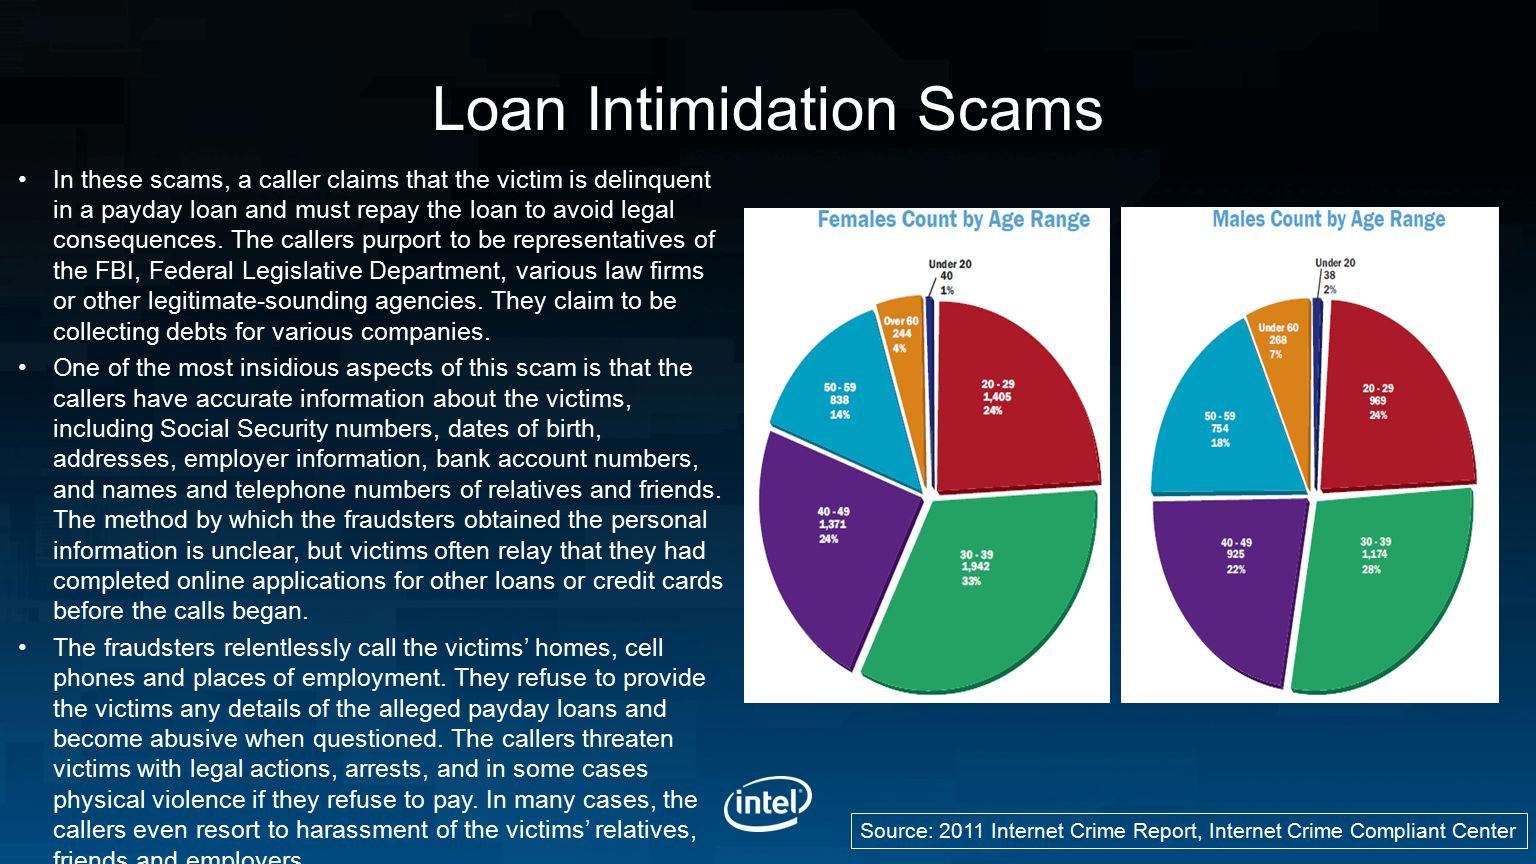 Loan Intimidation Scams In these scams, a caller claims that the victim is delinquent in a payday loan and must repay the loan to avoid legal consequences.